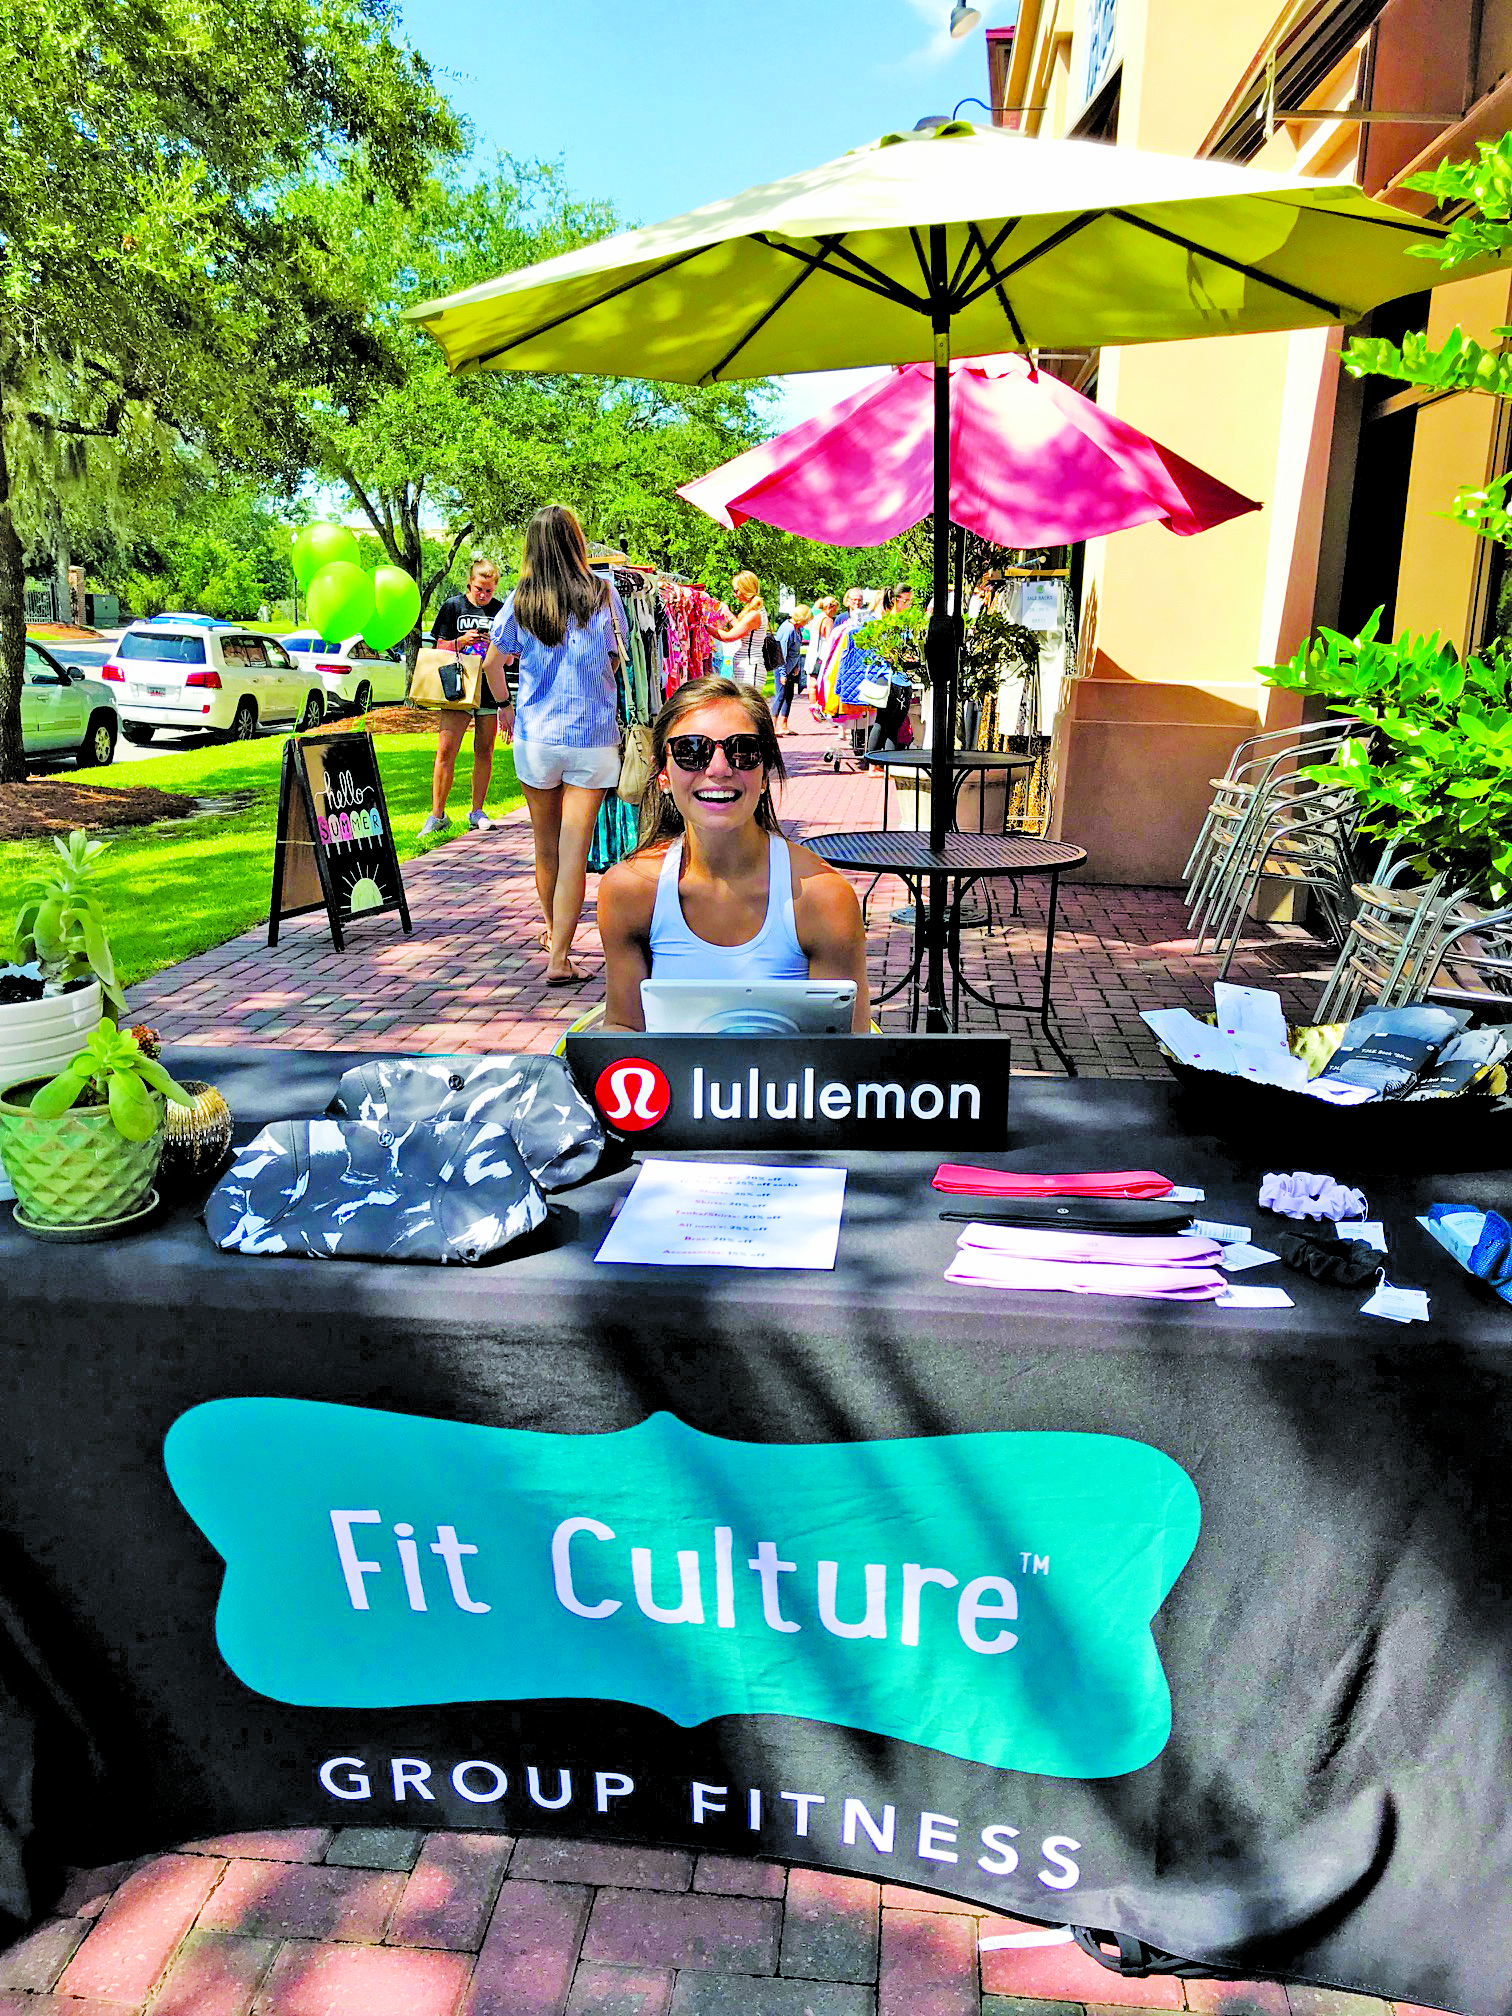 Meredith Downer of Fit Culture greeted her customers with a welcoming smile!